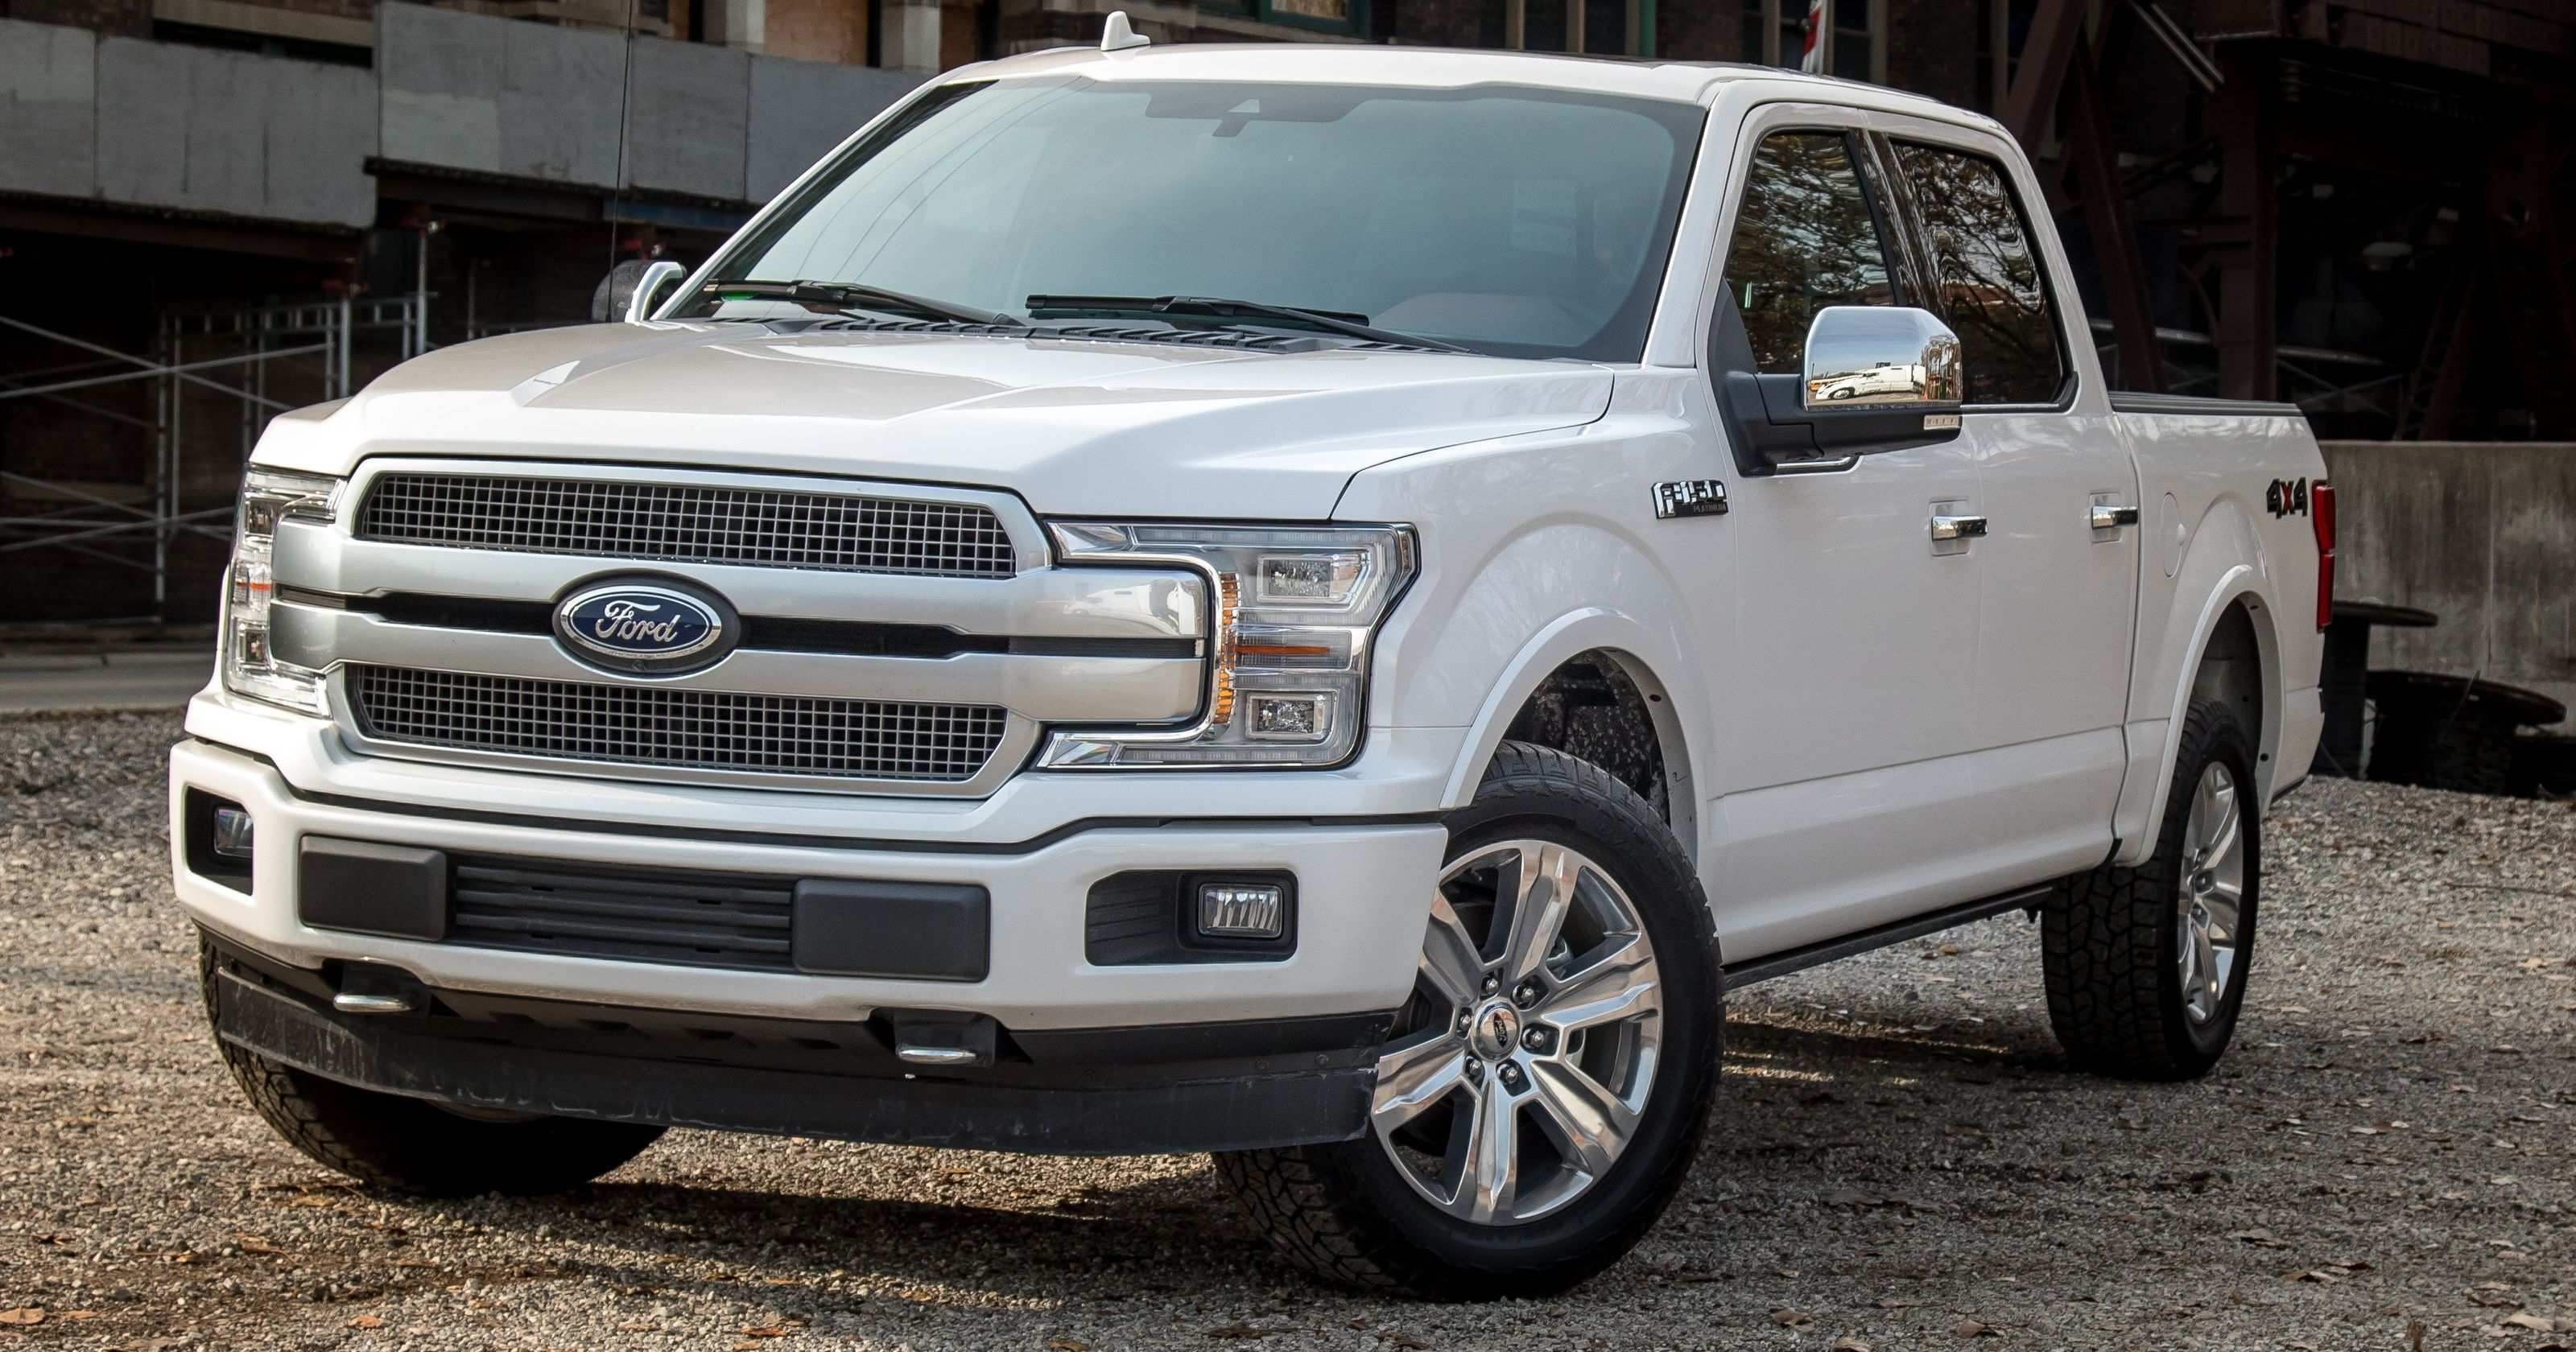 63 A 2020 Ford Lobo Prices